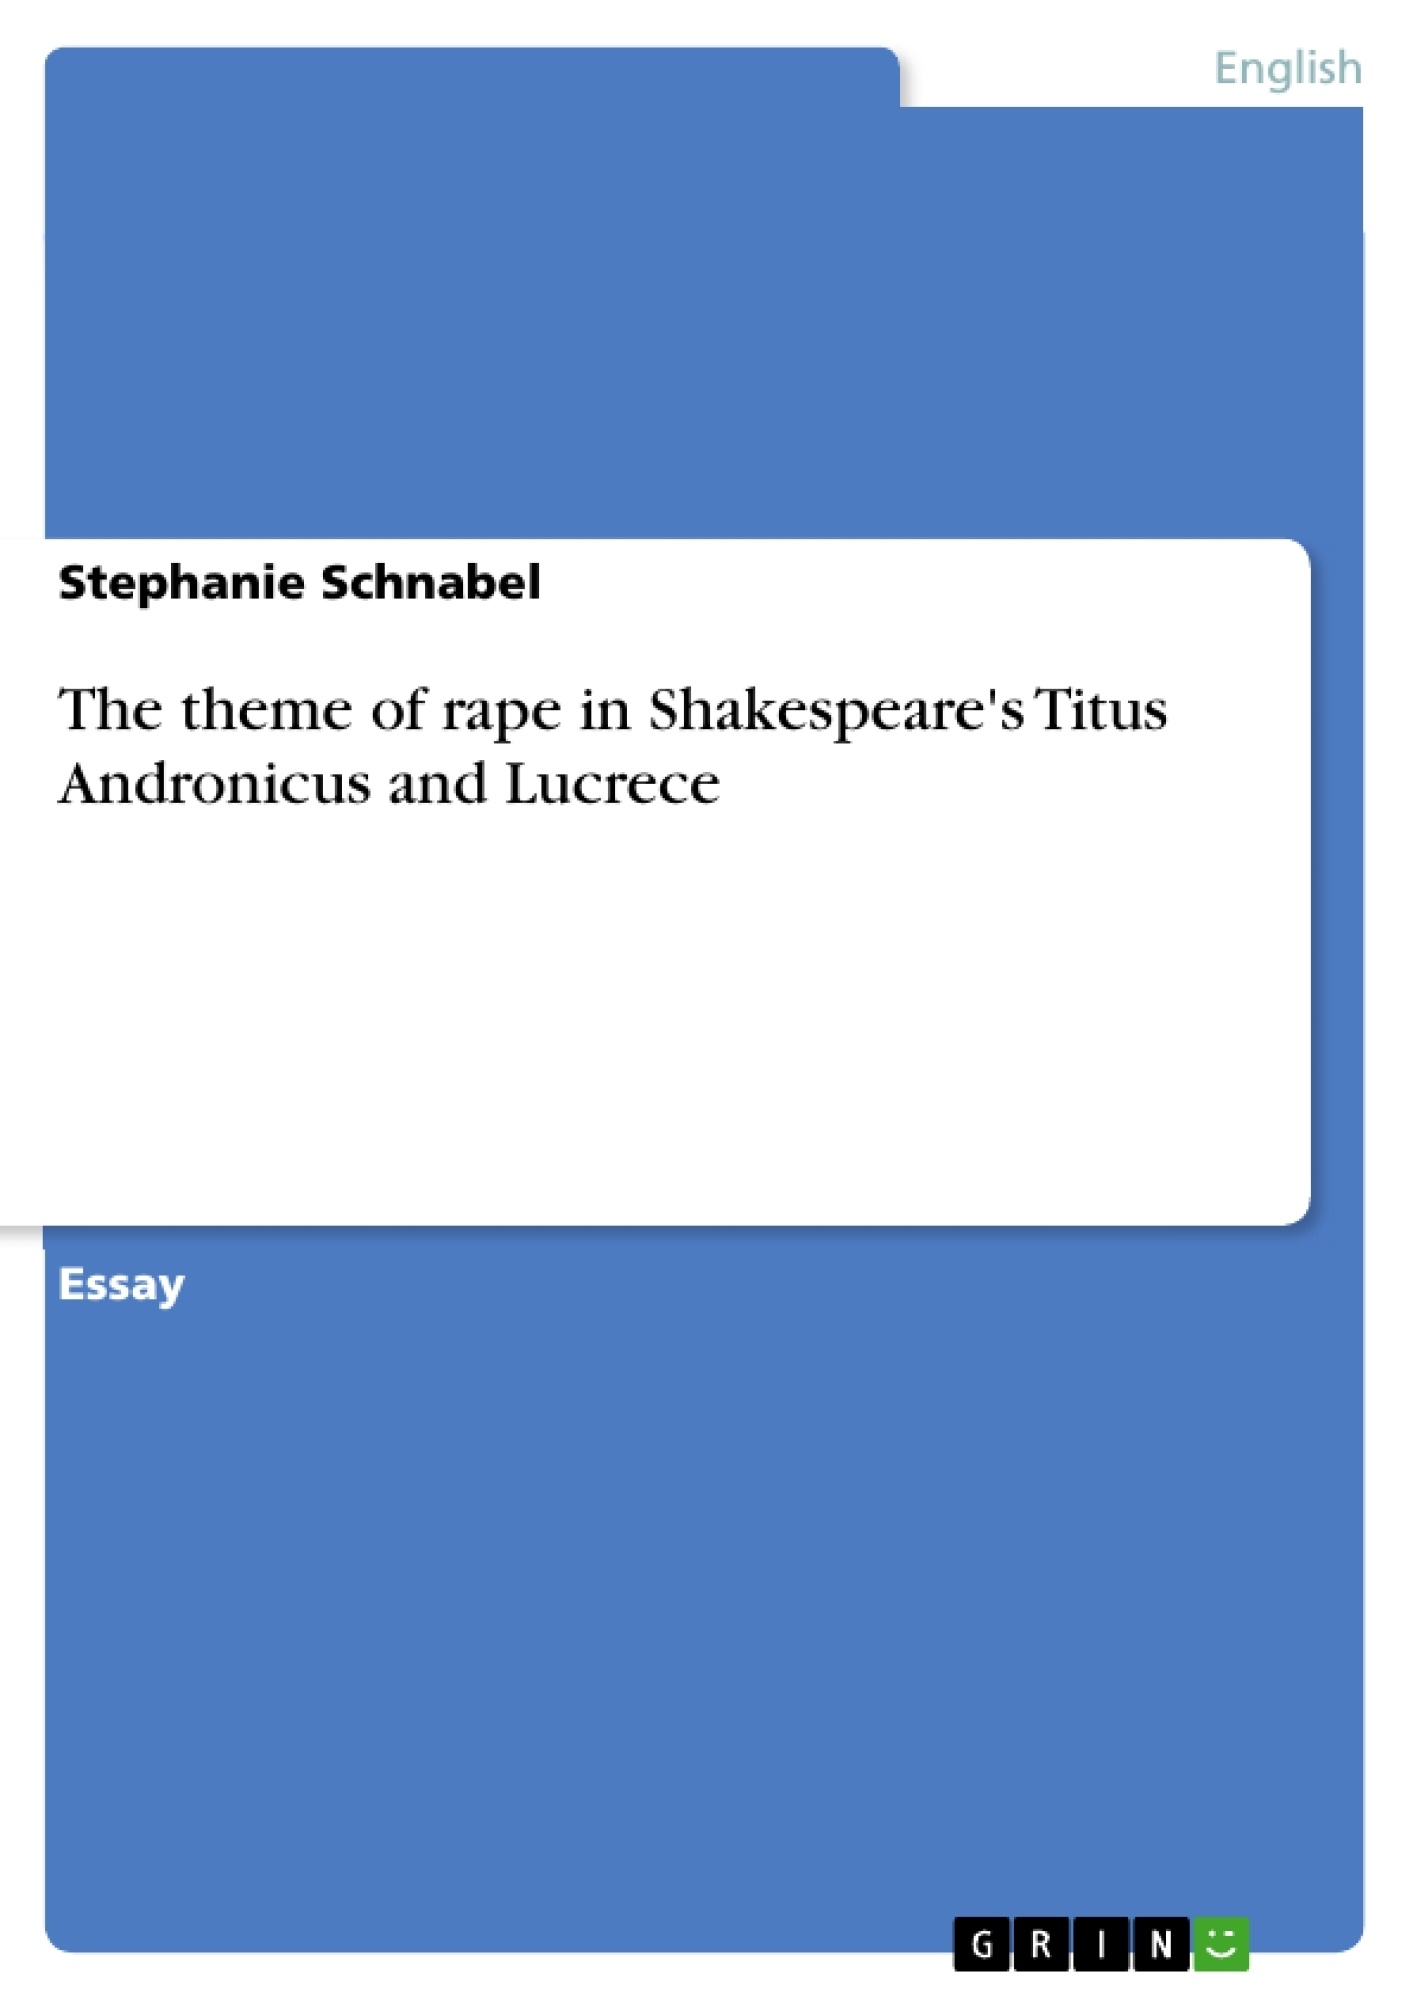 the theme of rape in shakespeare s titus andronicus and lucrece upload your own papers earn money and win an iphone 7